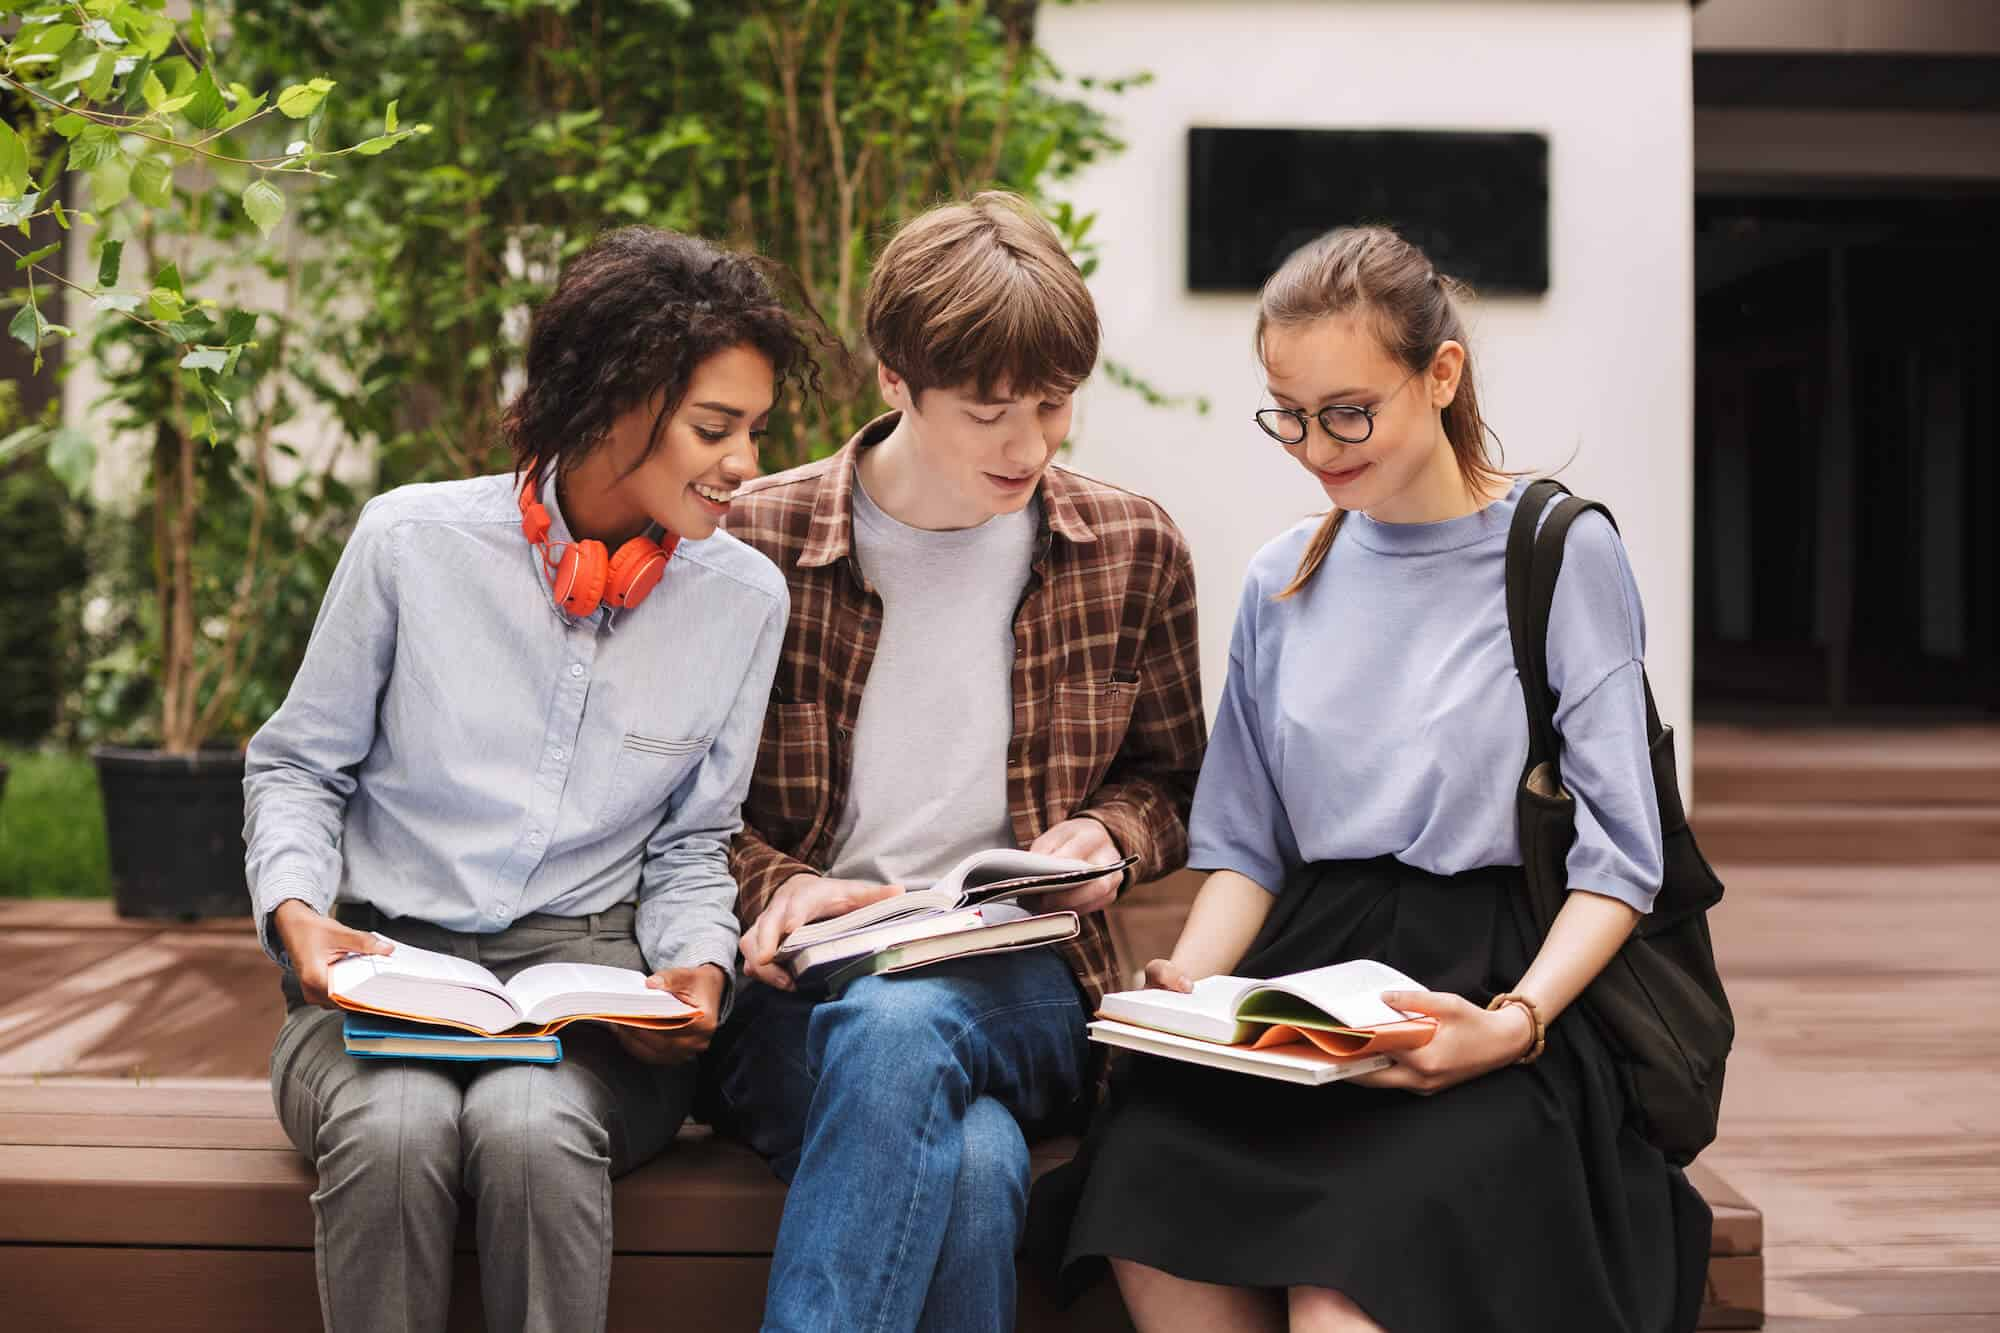 SSAT: How to Master the Reading Section